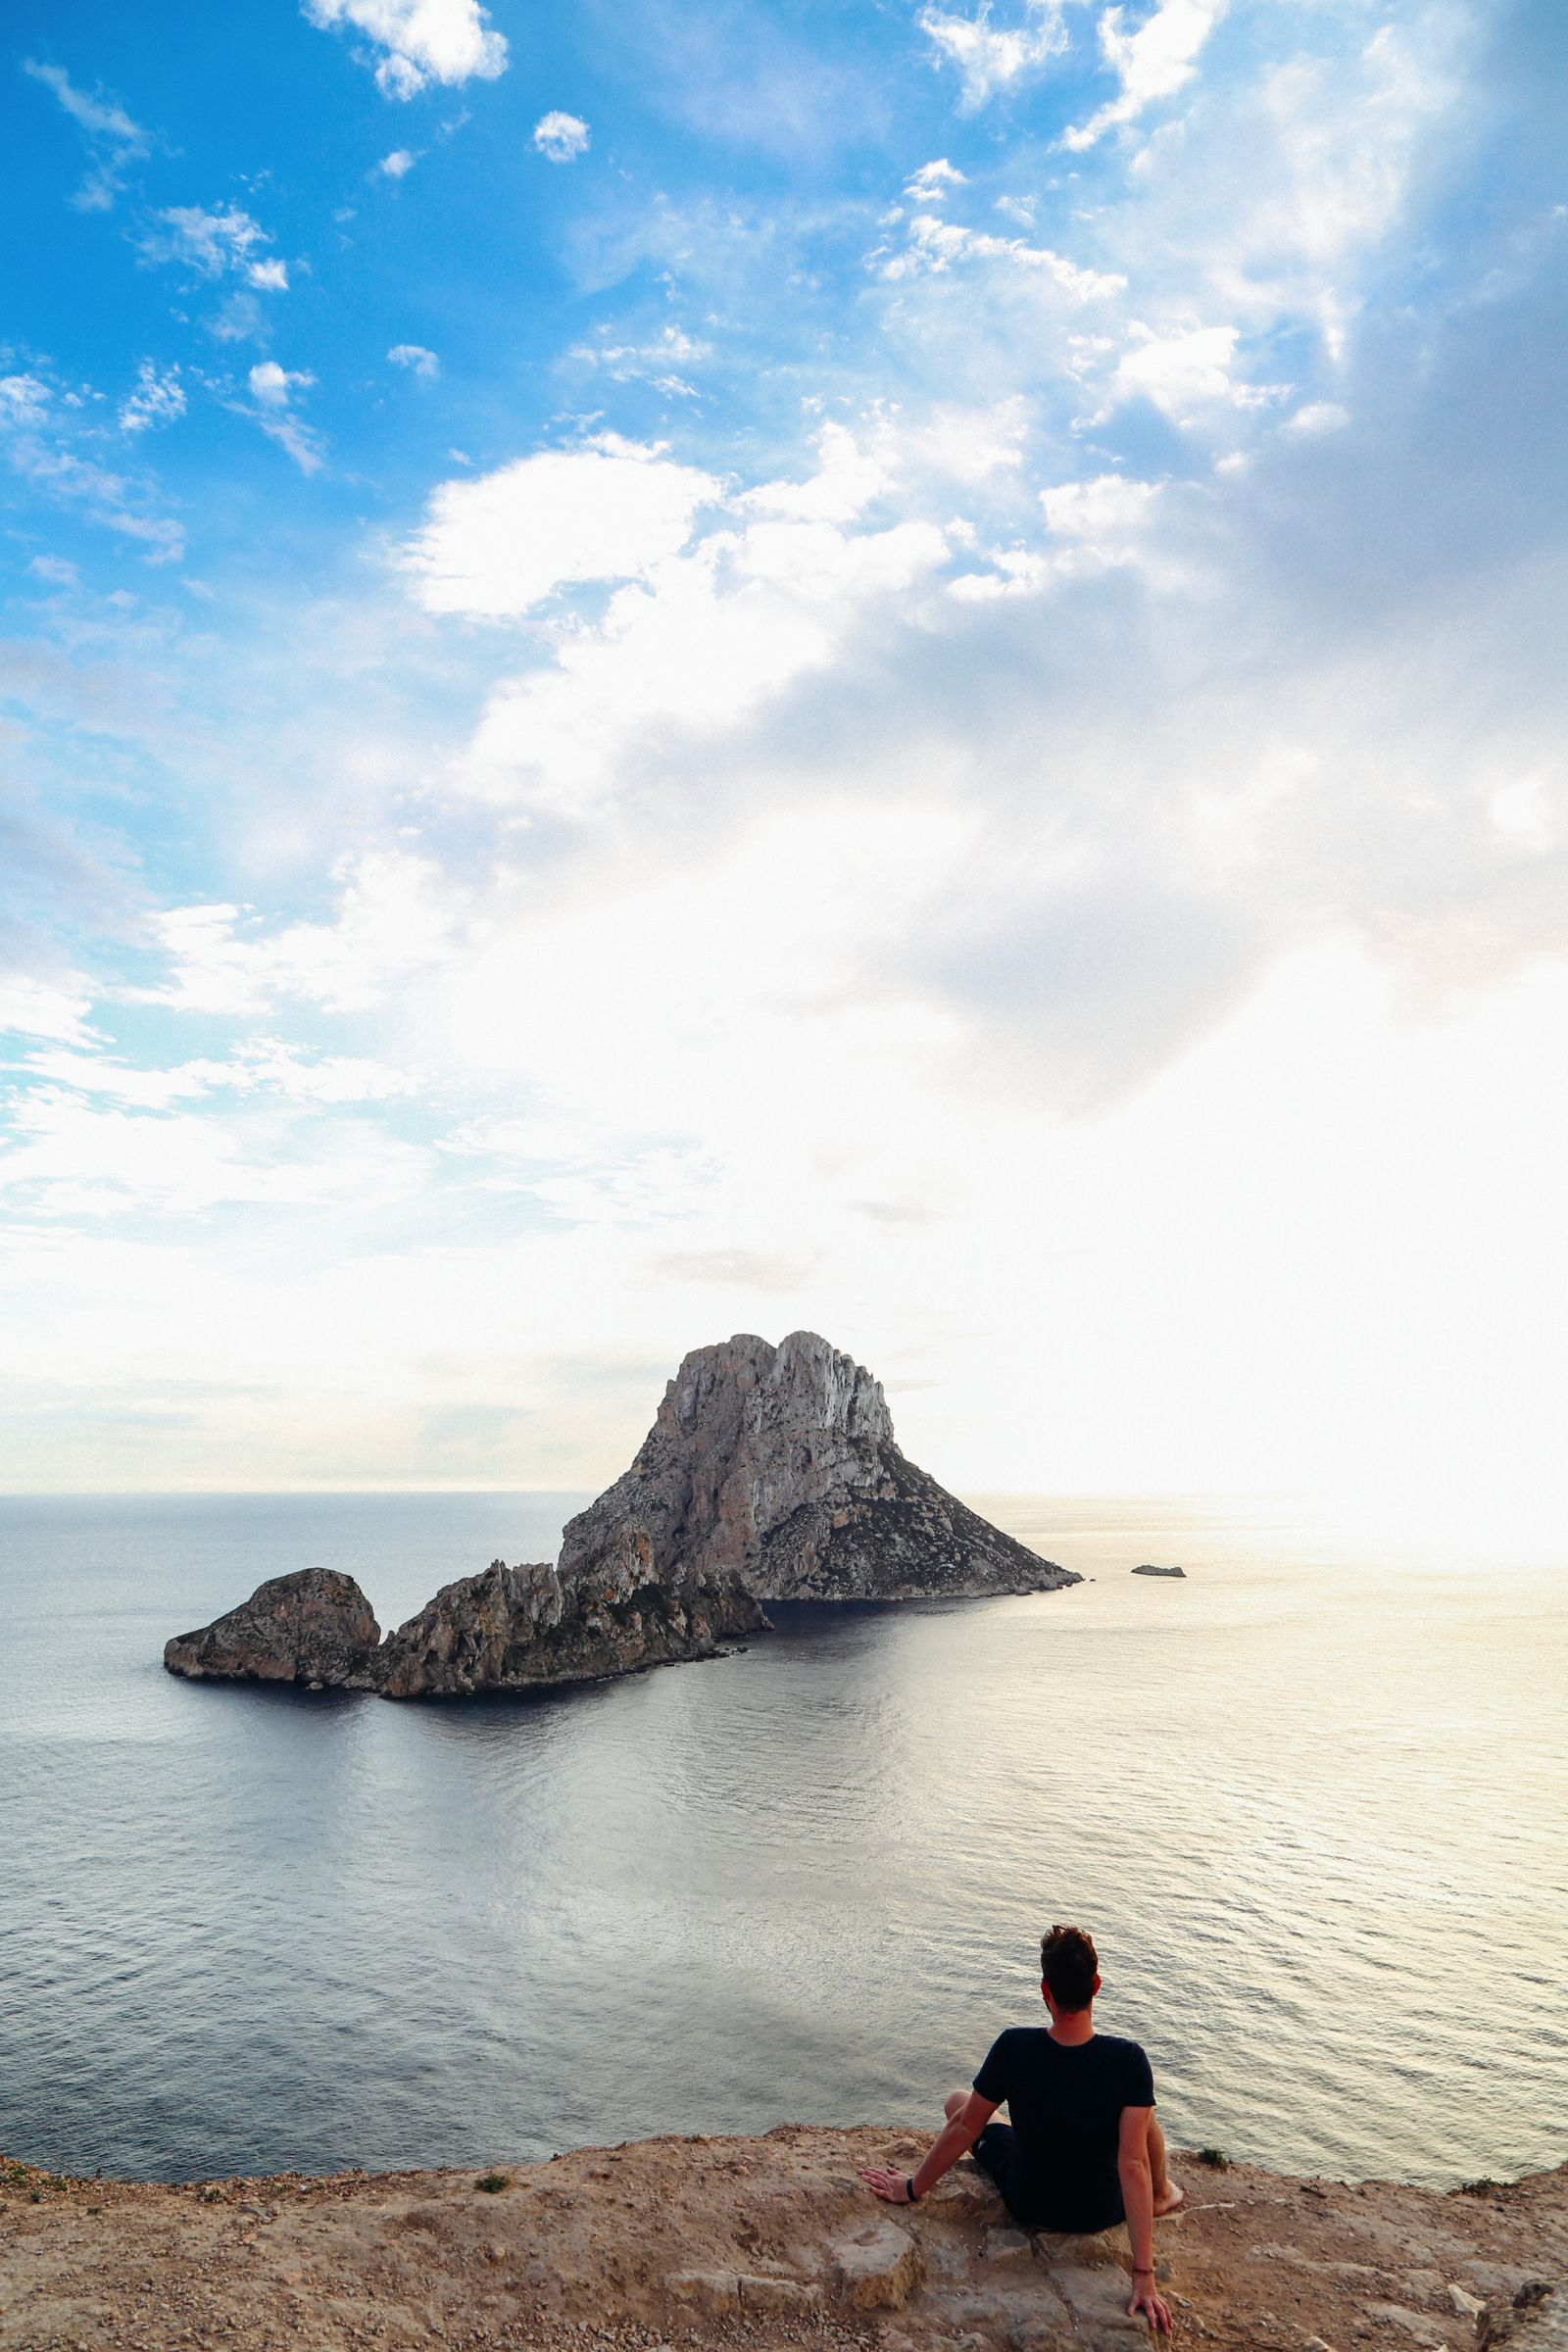 The Best Place To Watch The Sunset In Ibiza AND Where To Go For An Amazing 10 Course Gourmet Dinner! (12)